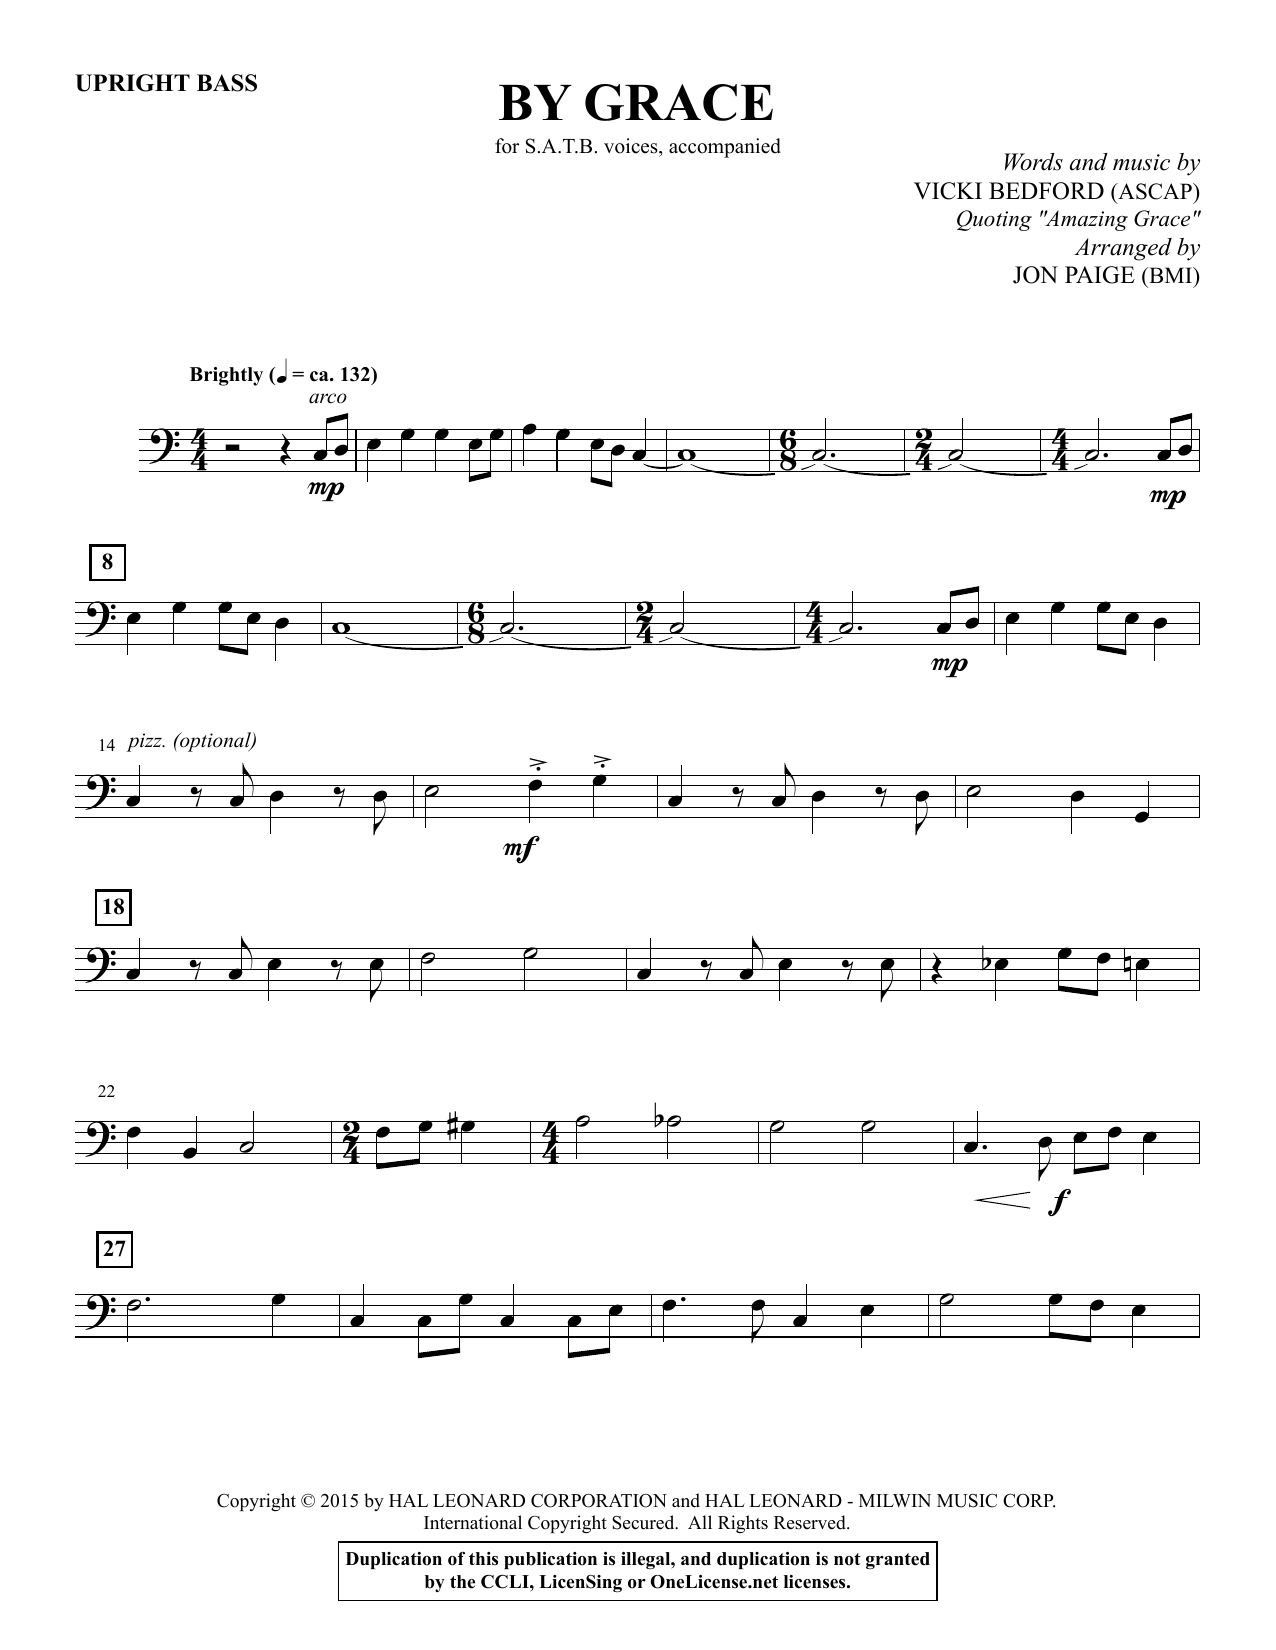 By Grace - Upright Bass Sheet Music